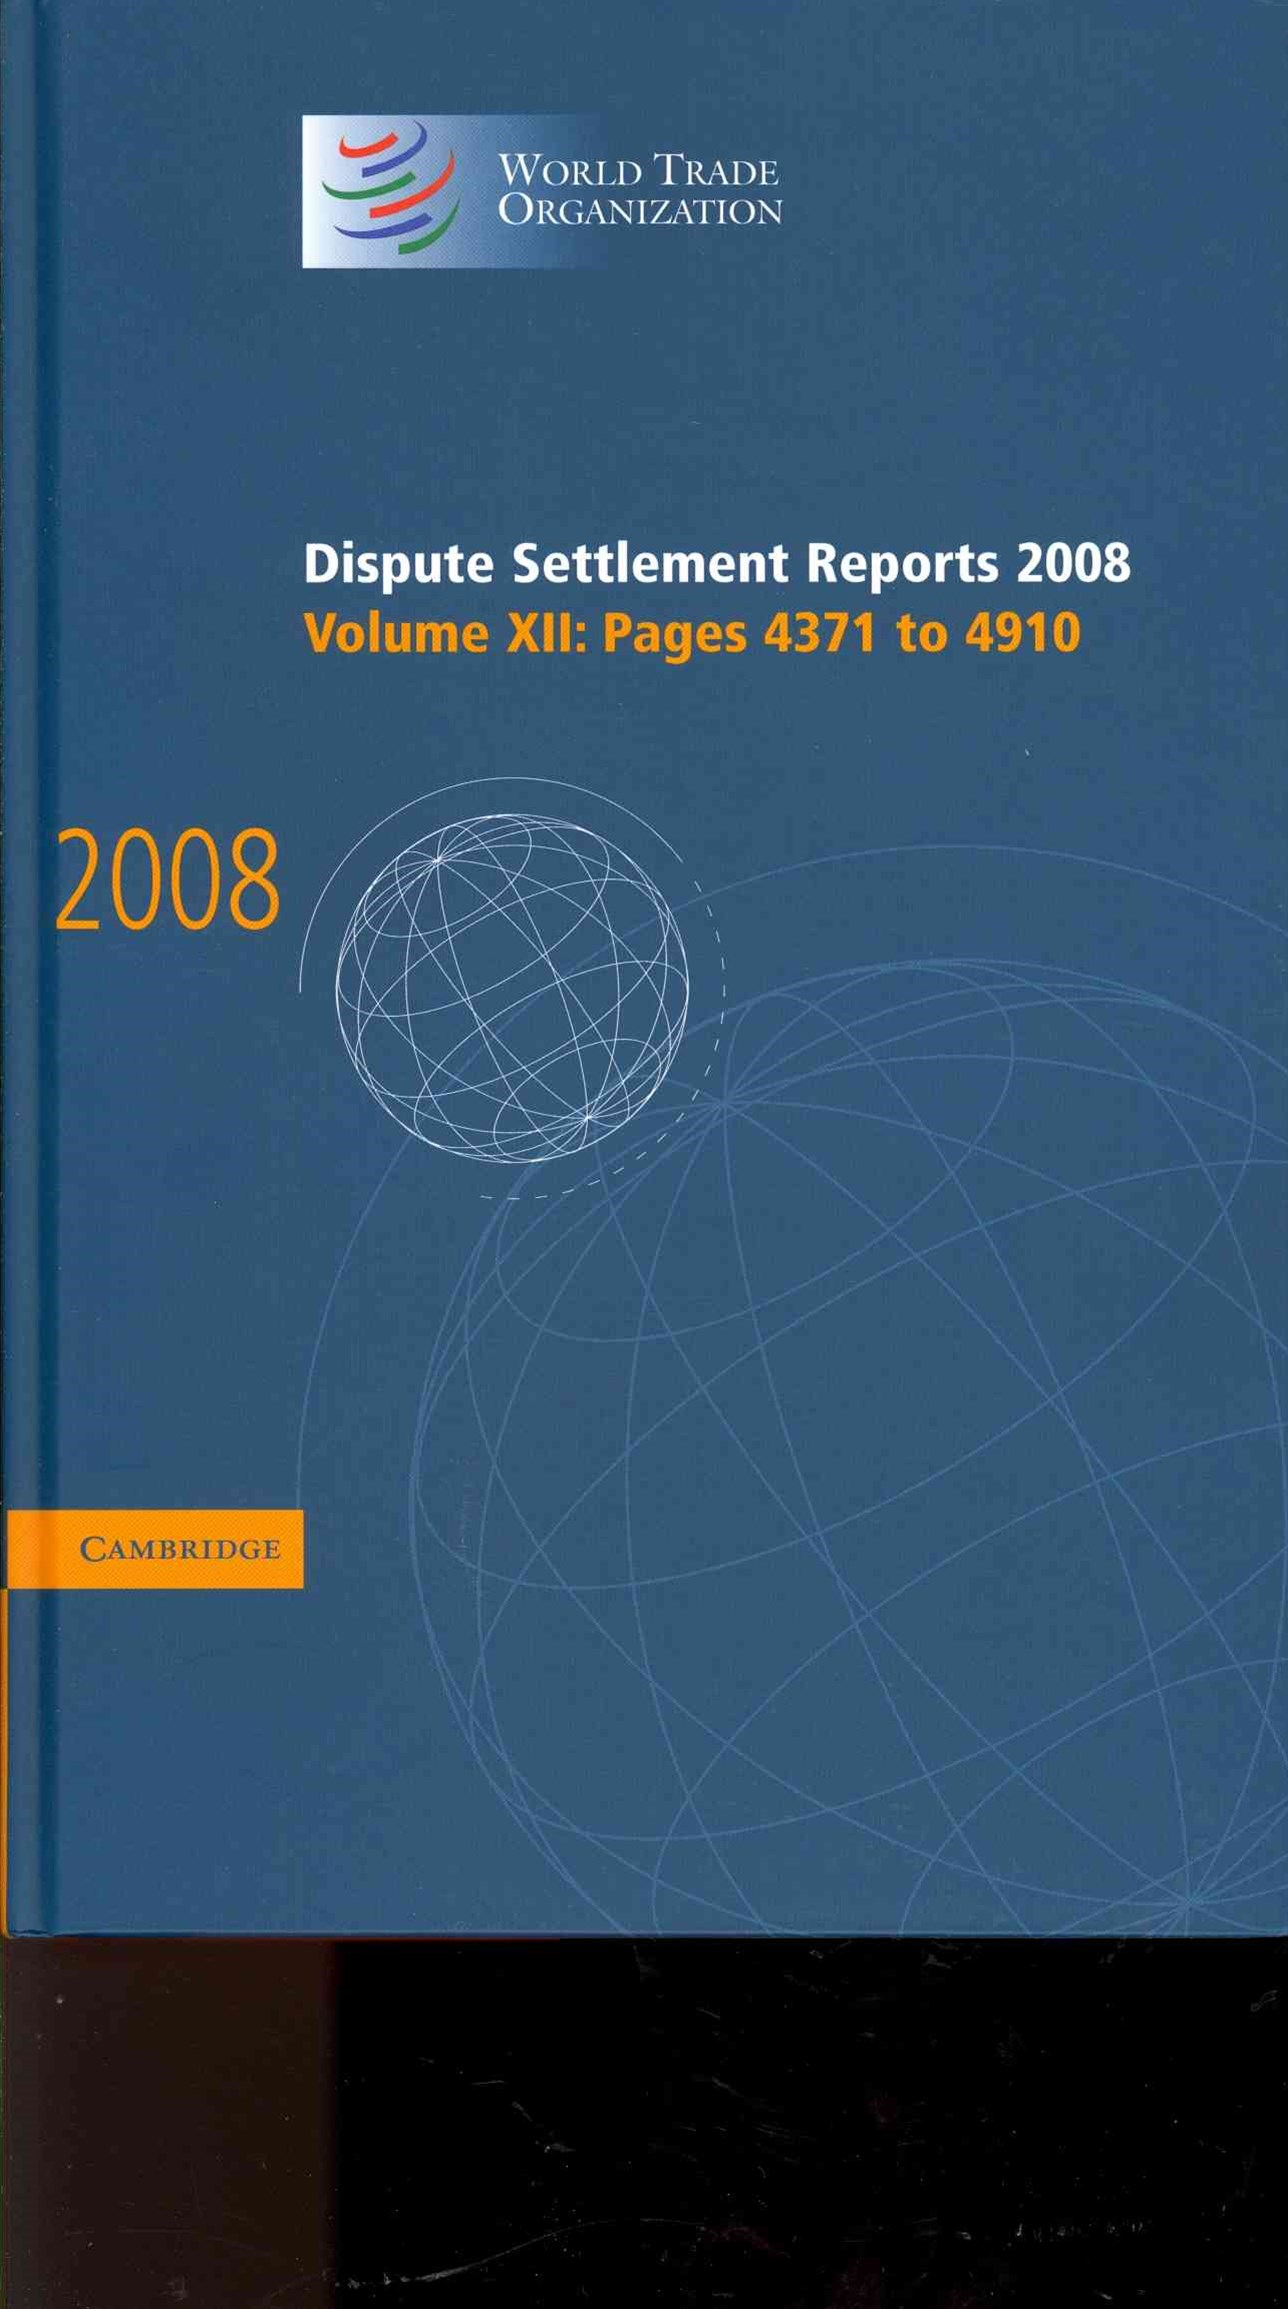 Dispute Settlement Reports 2008: Volume 12, Pages 4371-4910